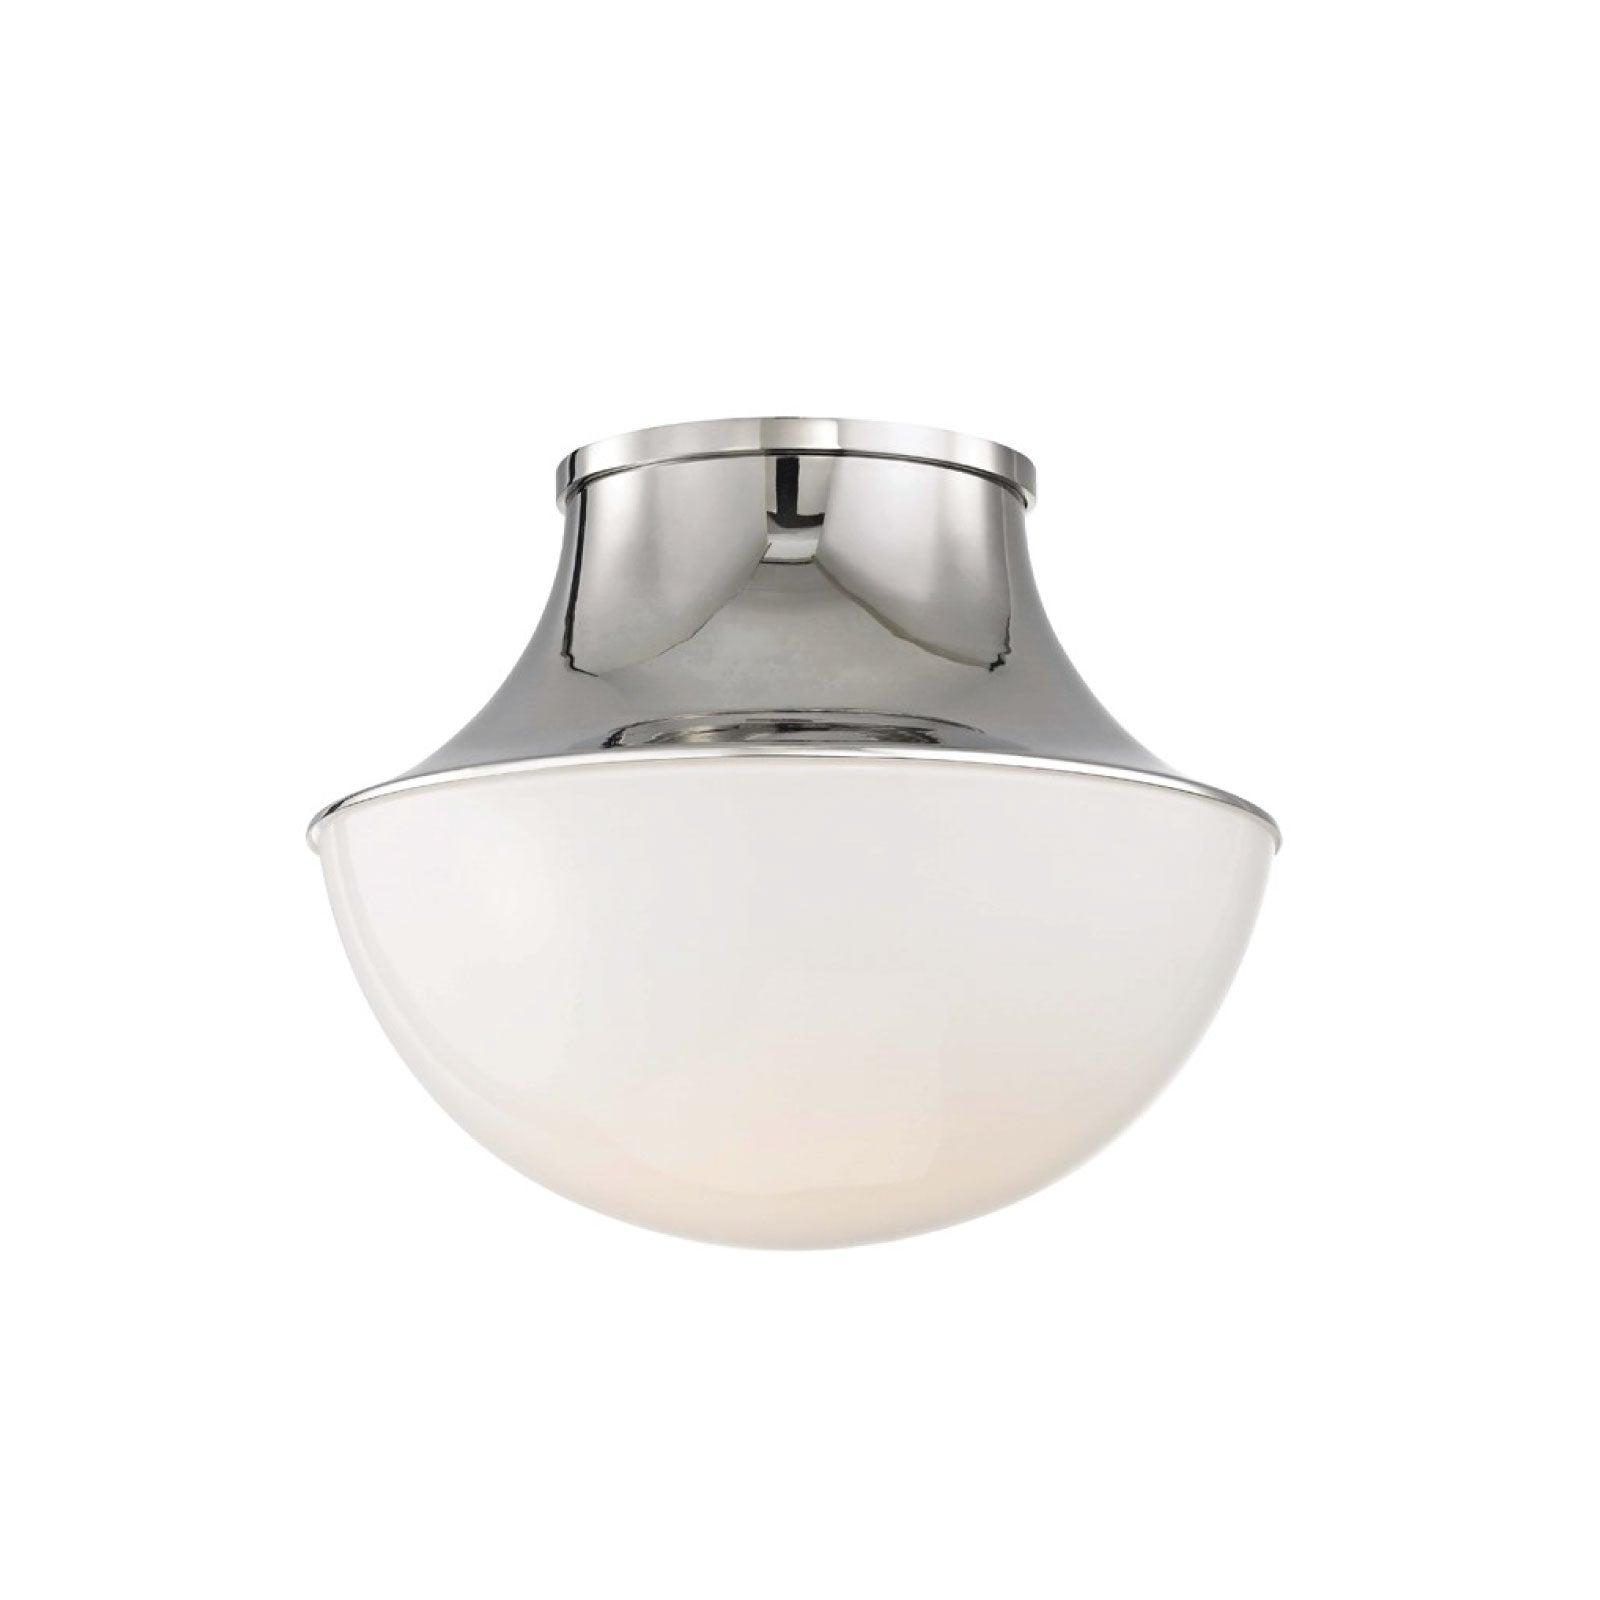 Crosby Flush Mount in Nickel - Large